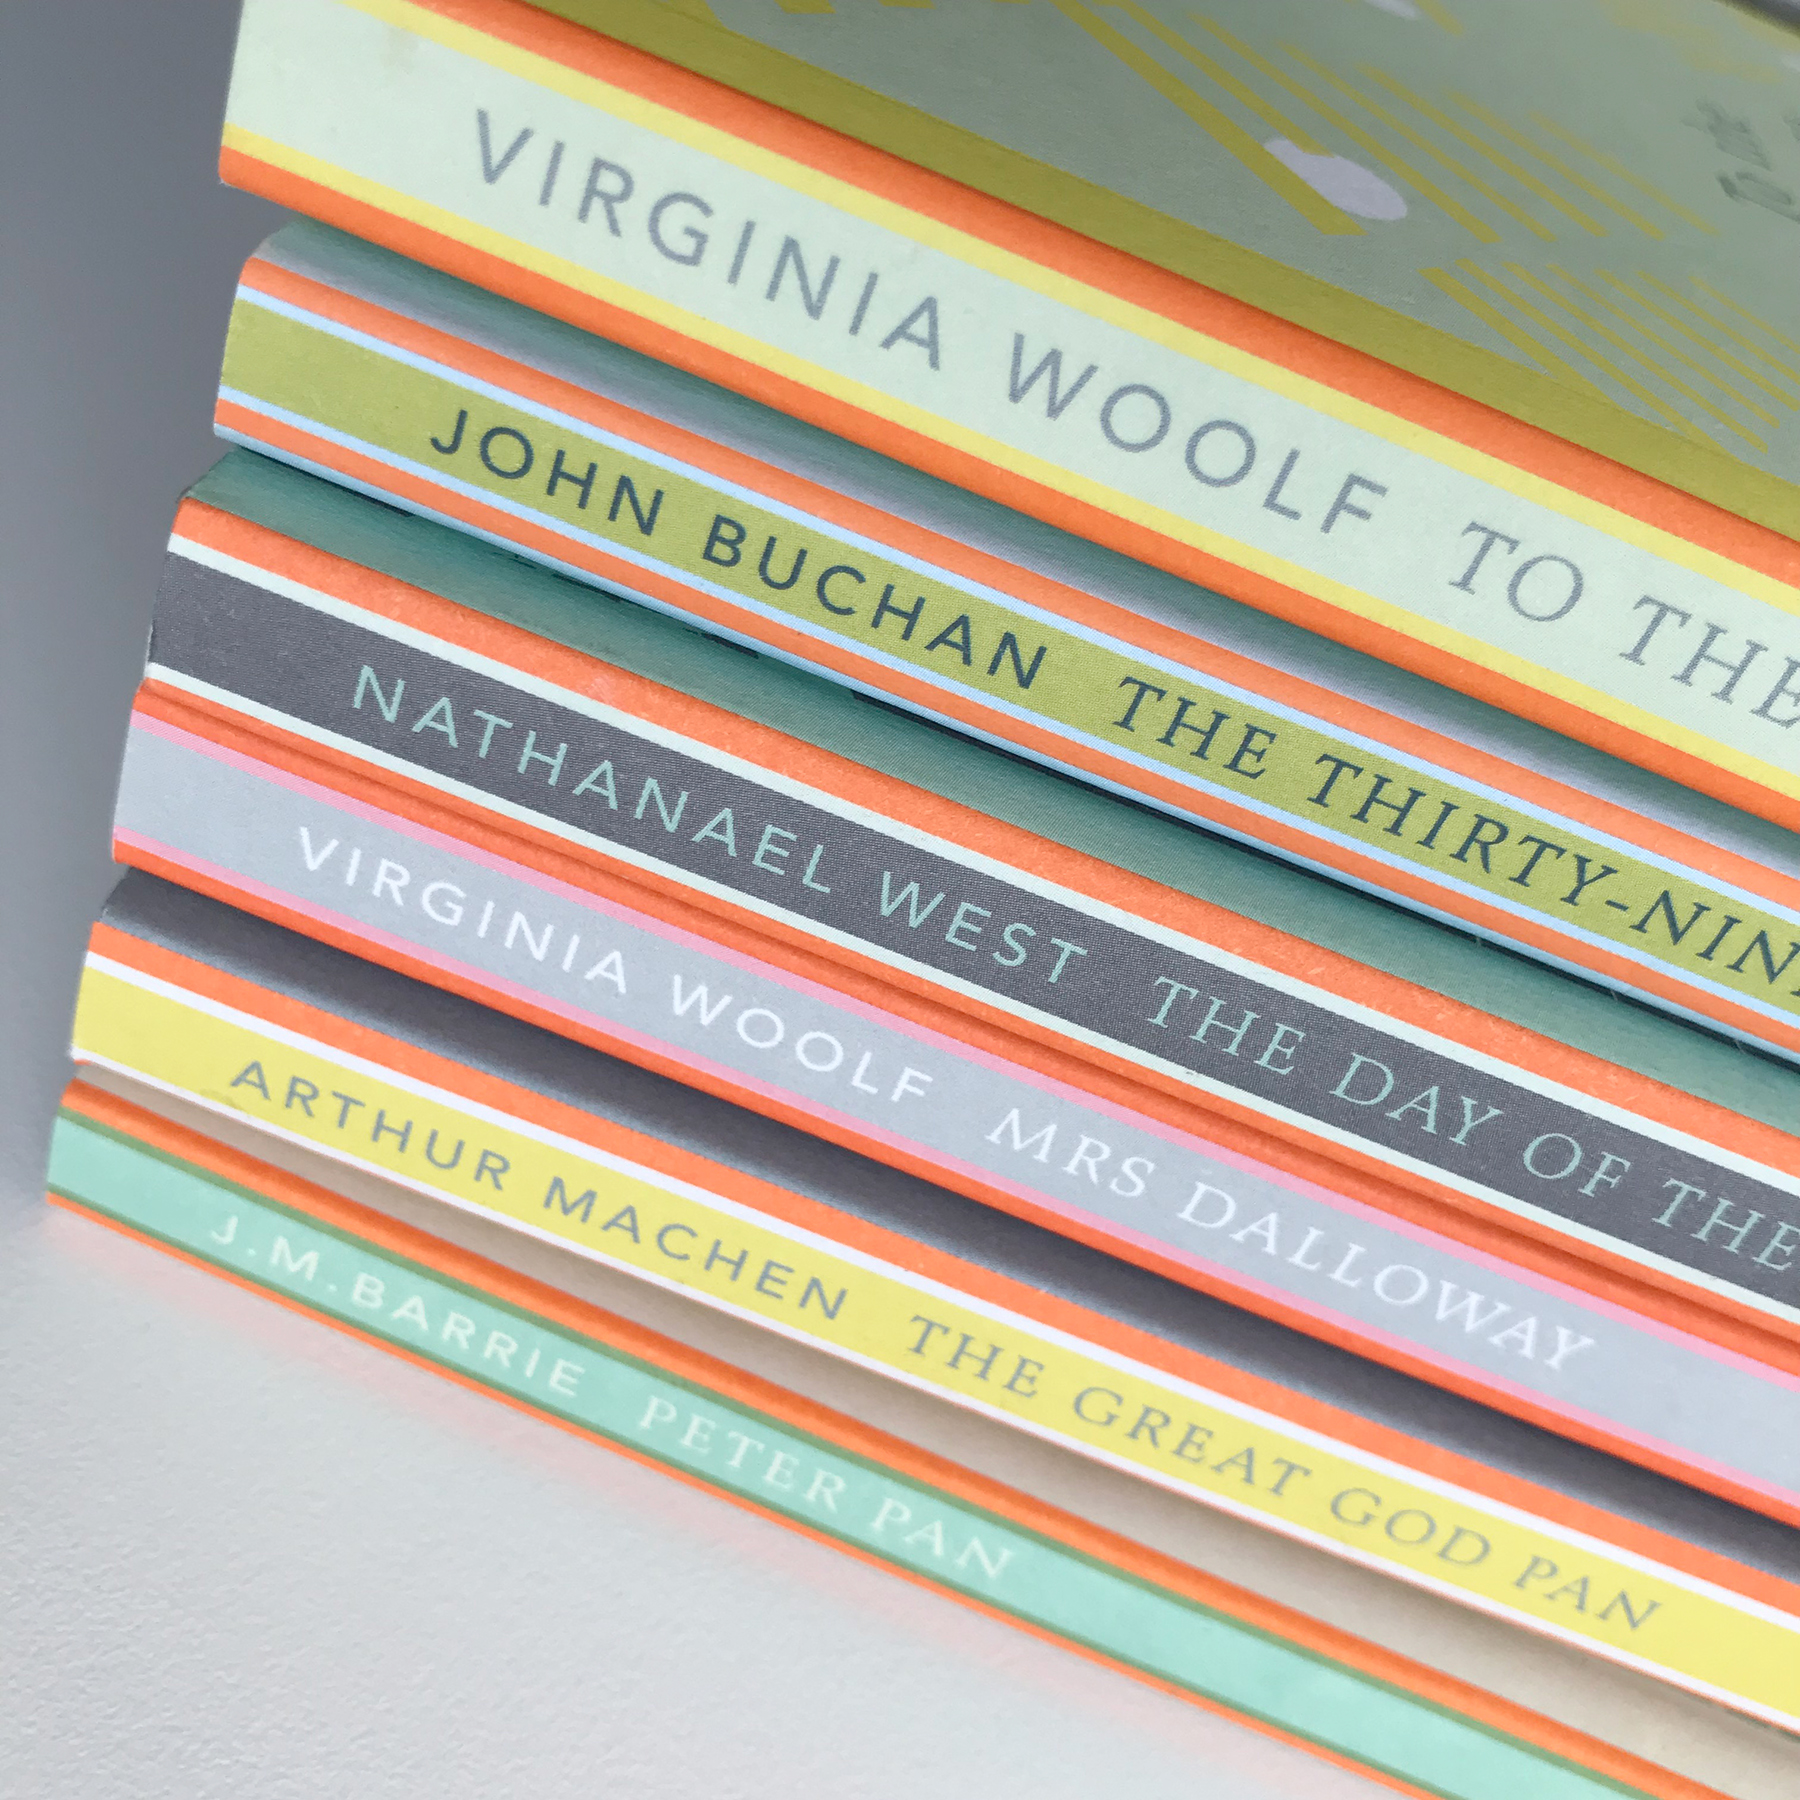 Penguin English Library spines